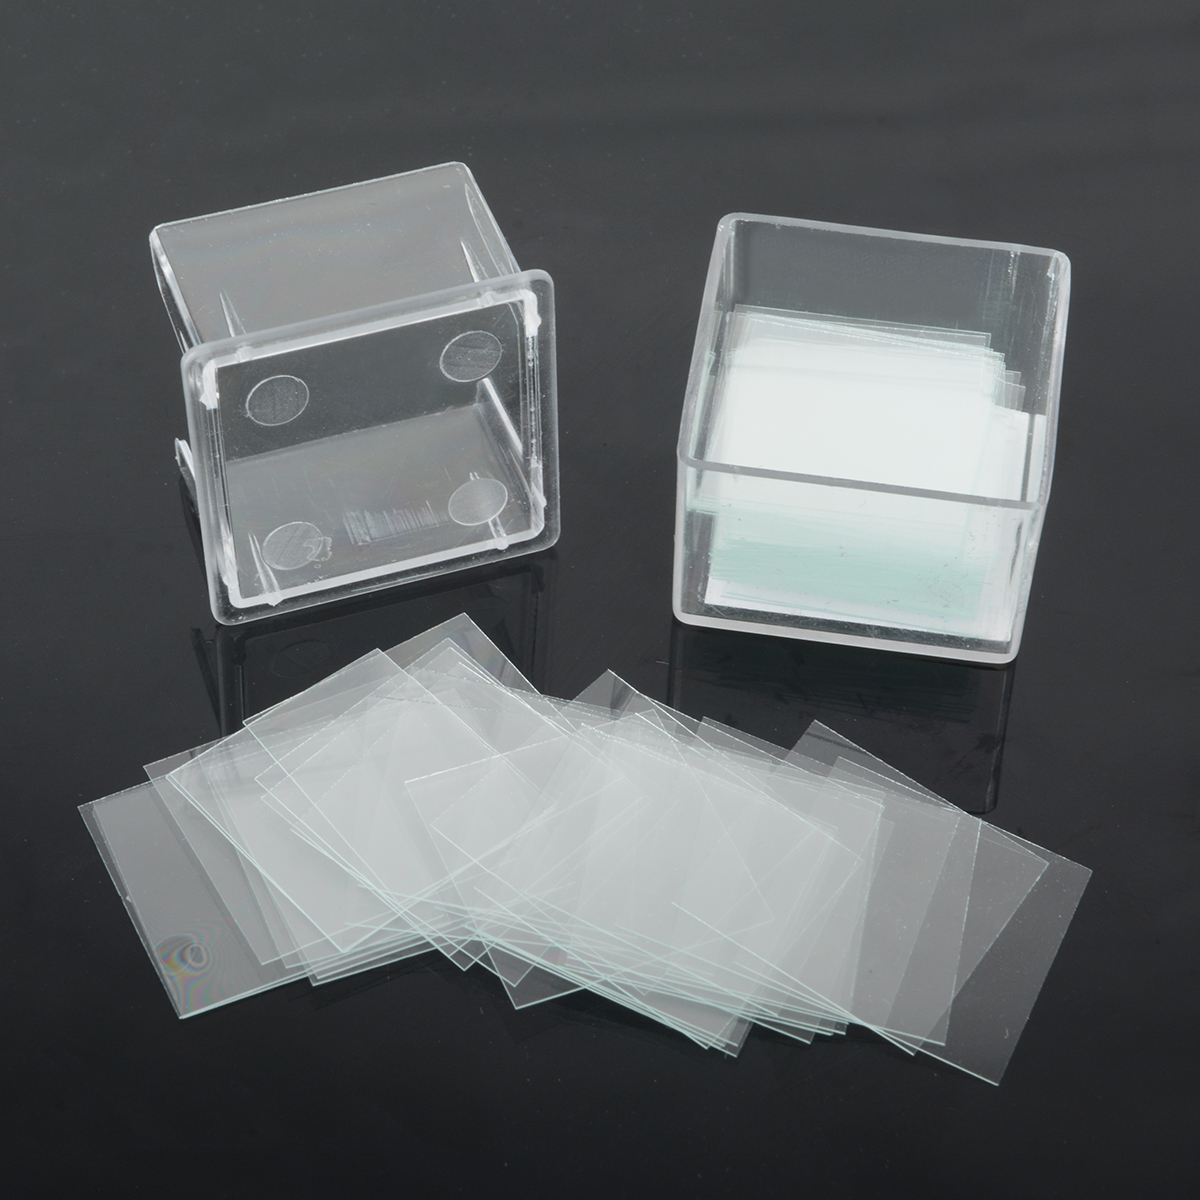 100pcs 22*22mm Blank Coverslip Slides Lab Supplies Square Microscope Cover Glass Set School Education Lab Replacement Tool